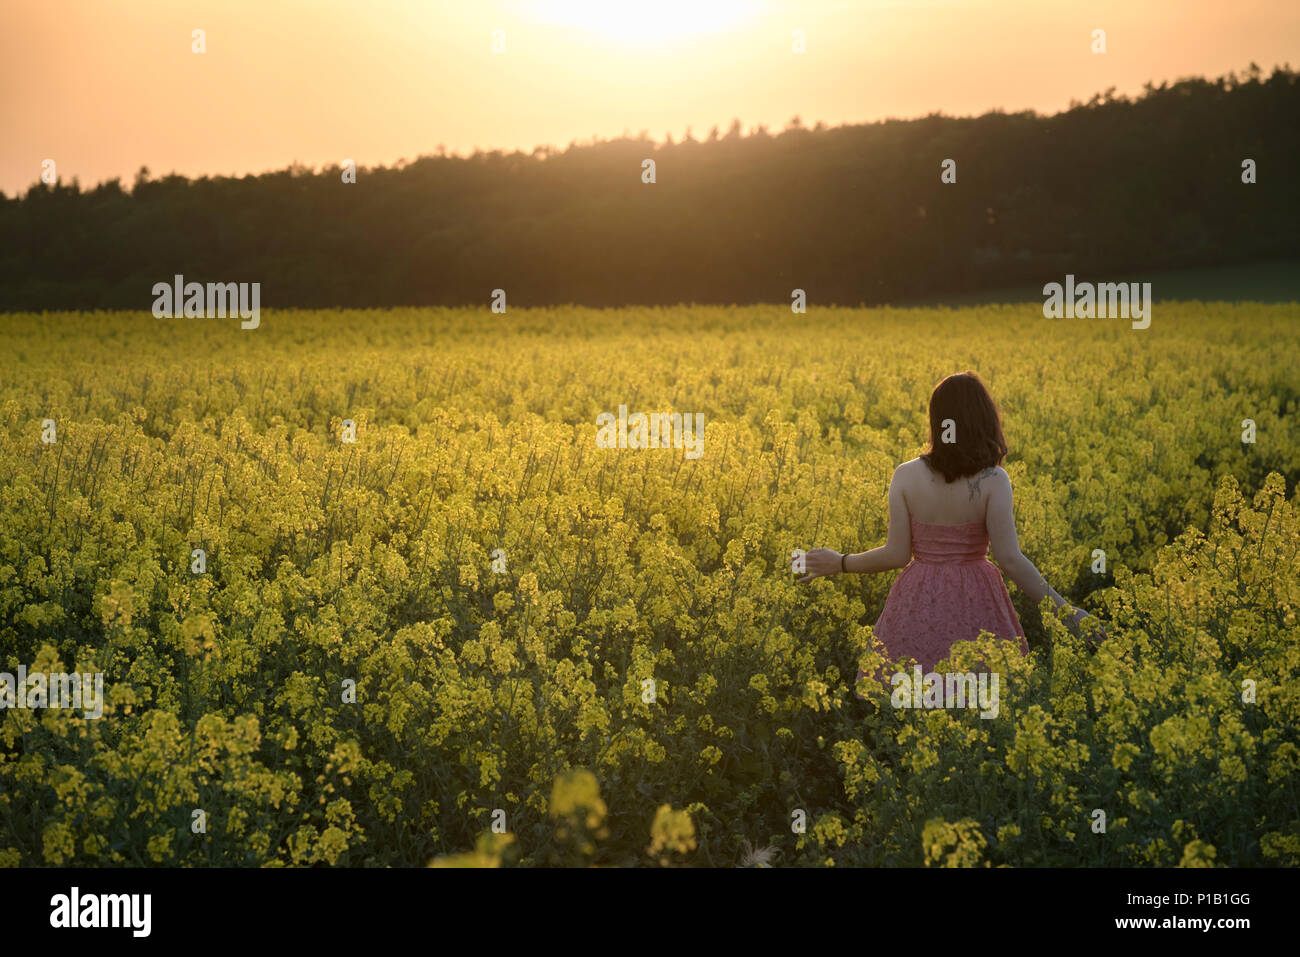 Surrounded By Canoloa Feilds Quotes: Canola Fields South Stock Photos & Canola Fields South